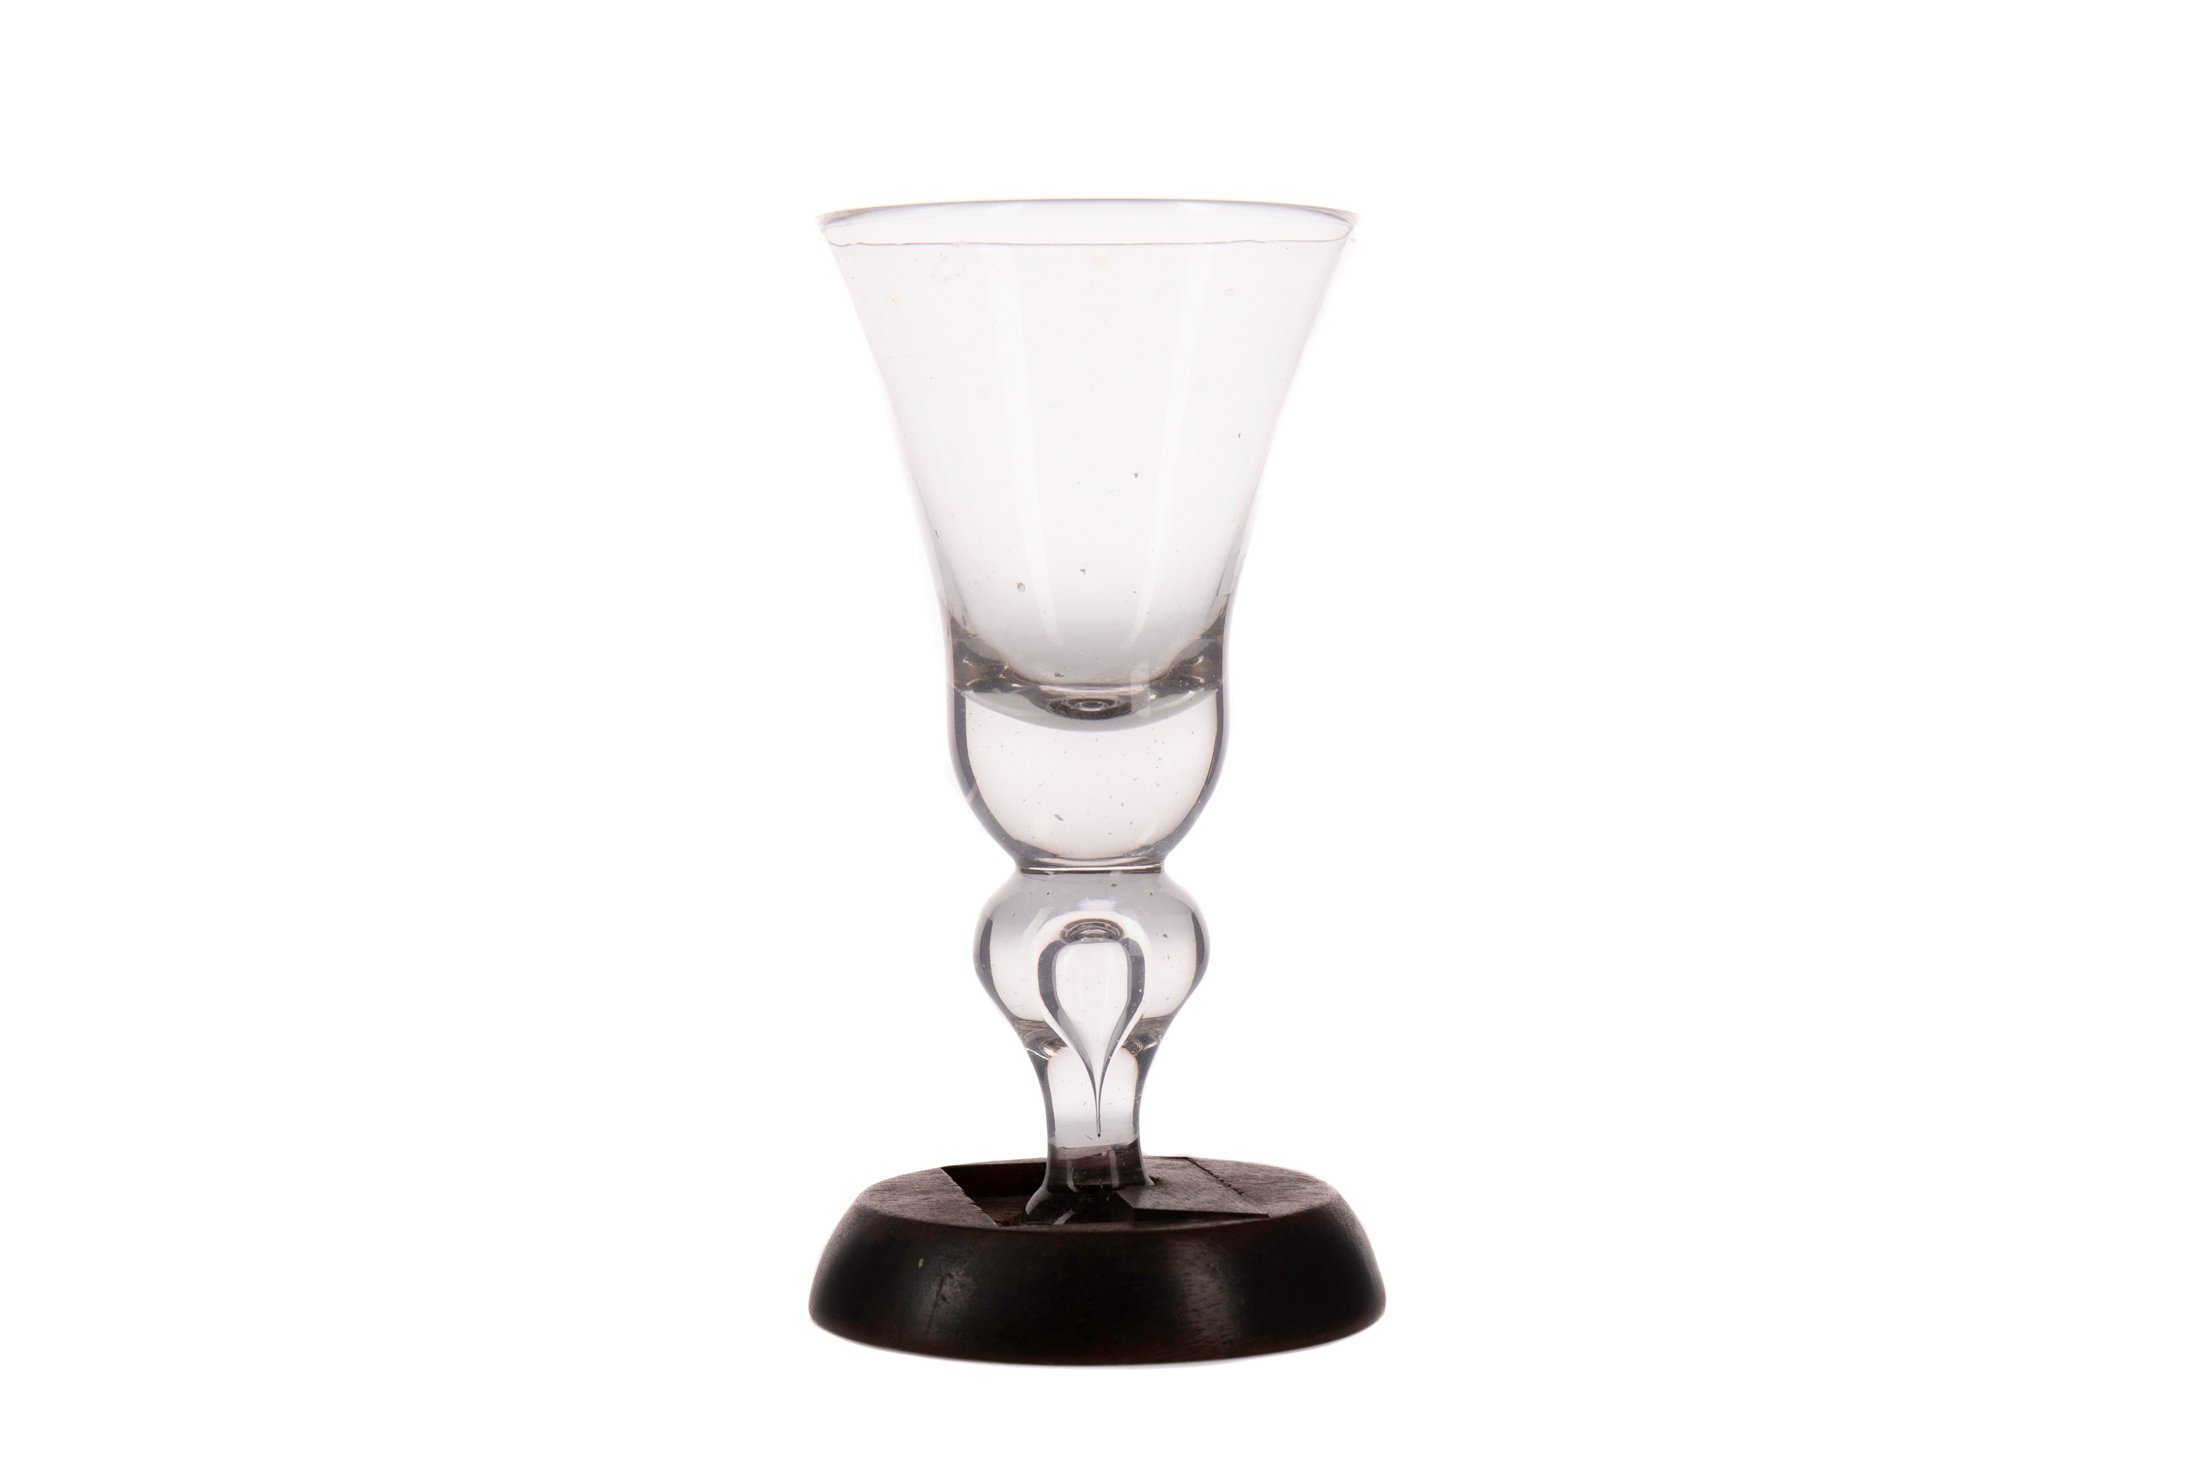 AN EARLY 18TH CENTURY NEWCASTLE HEAVY BALUSTER WINE GLASS